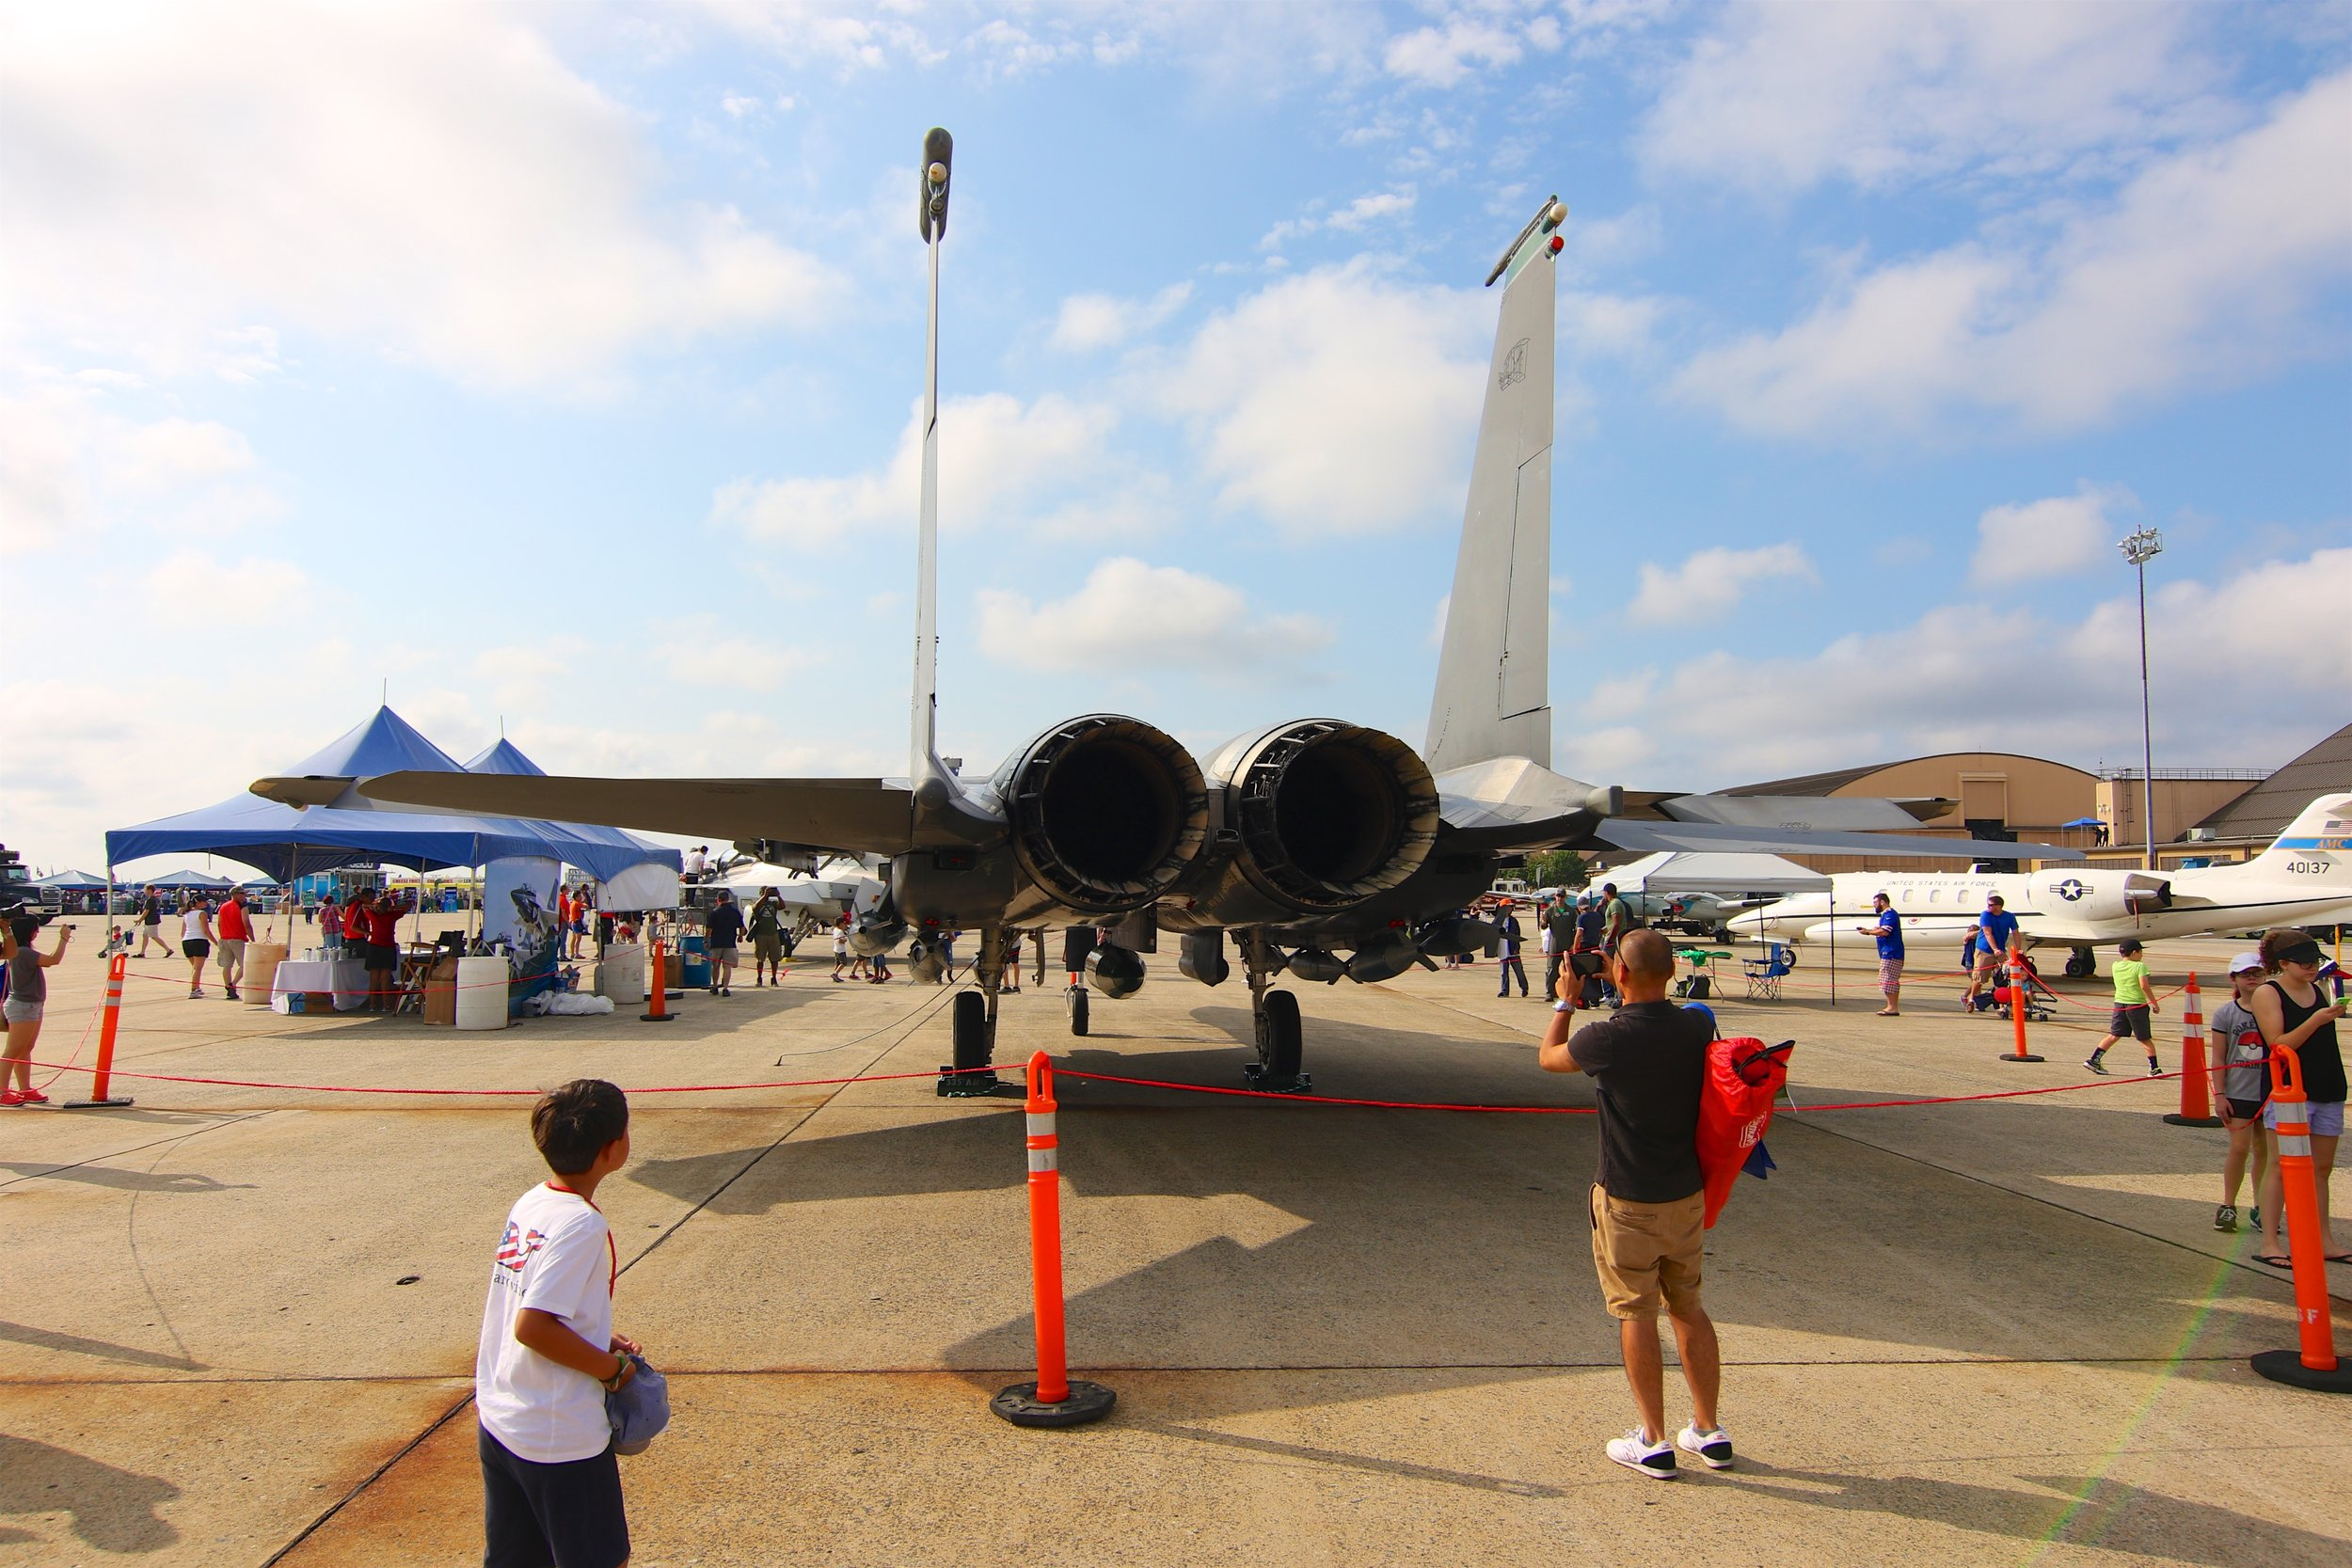 I finally got to check out the F-15E Strike Eagle. I'd actually never seen one of these in person either. It was hidden in the back at the 2015 show, and by the time I saw it we were already at the other end of the tarmac and on our way out.